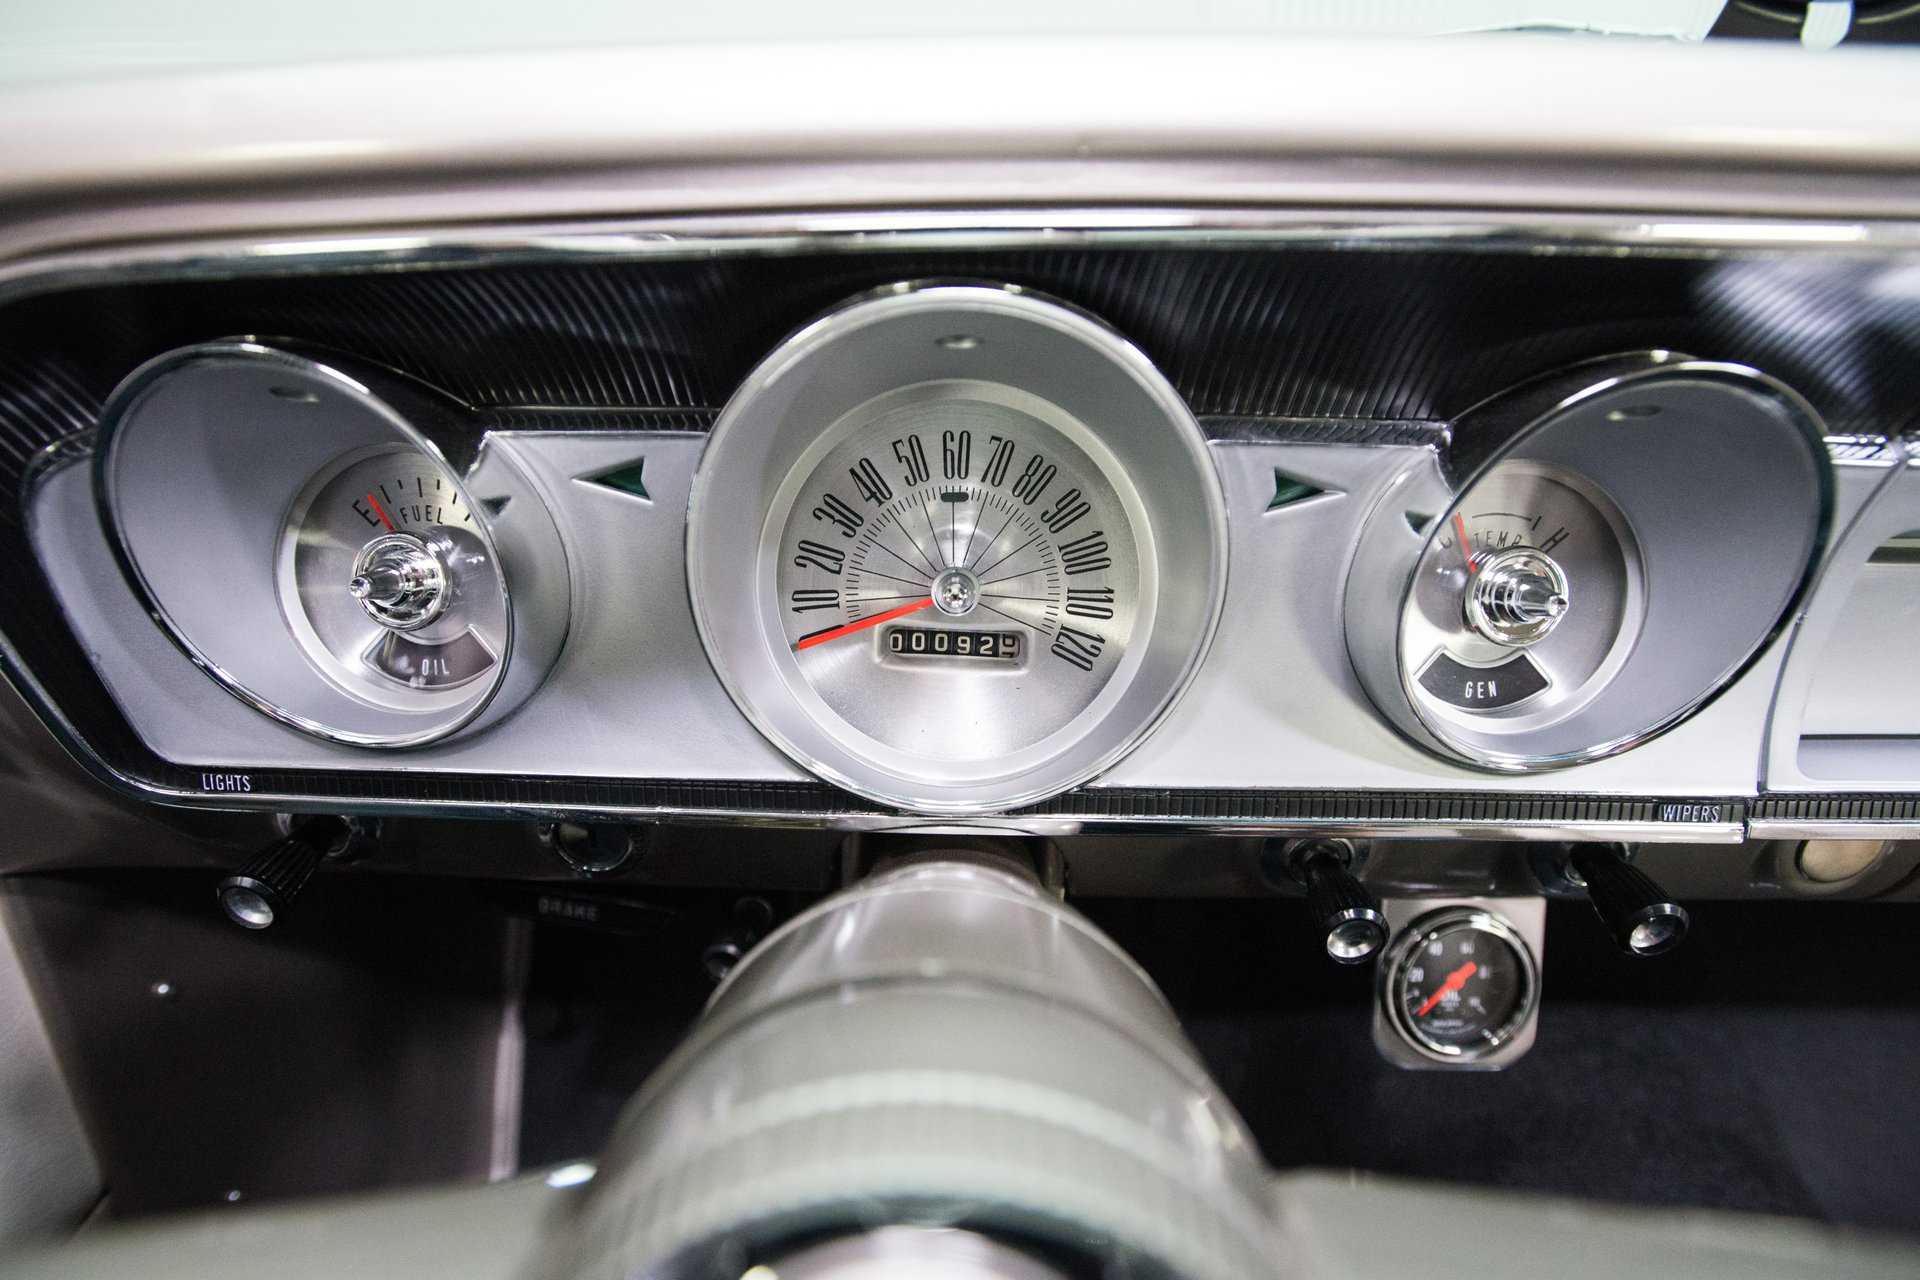 Bildresultat för 1964 fairlane gauges